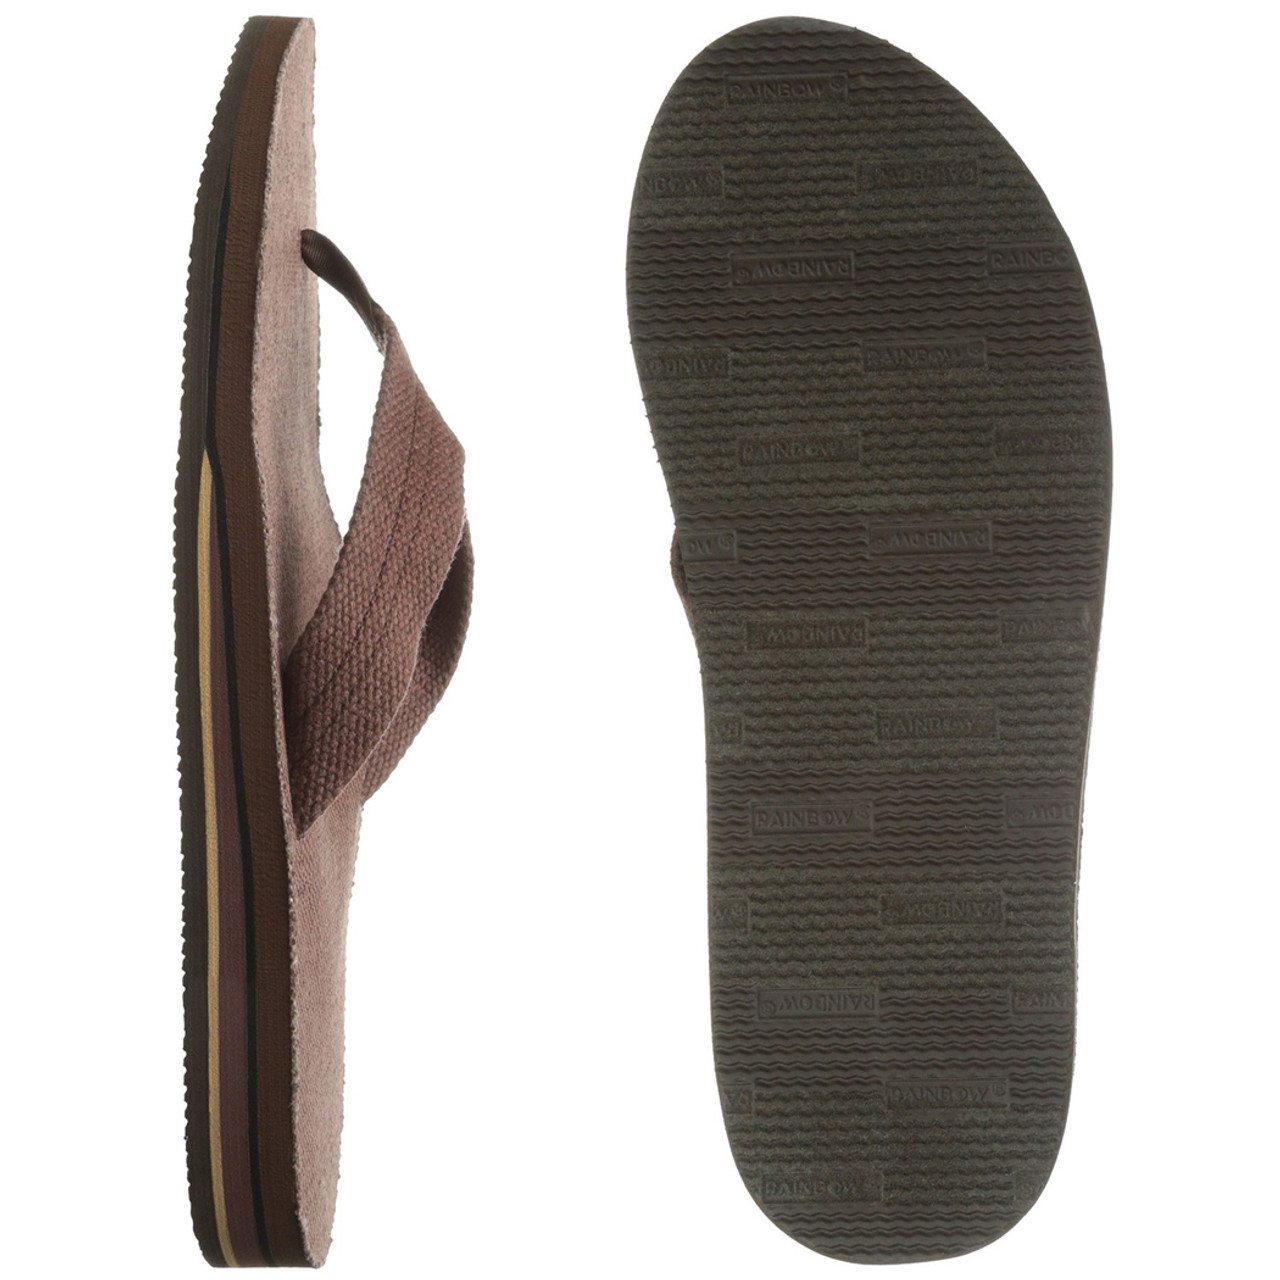 7e6a802857b1 Rainbow Flip Flops - Hemp Double Layer - Brown - Surf and Dirt